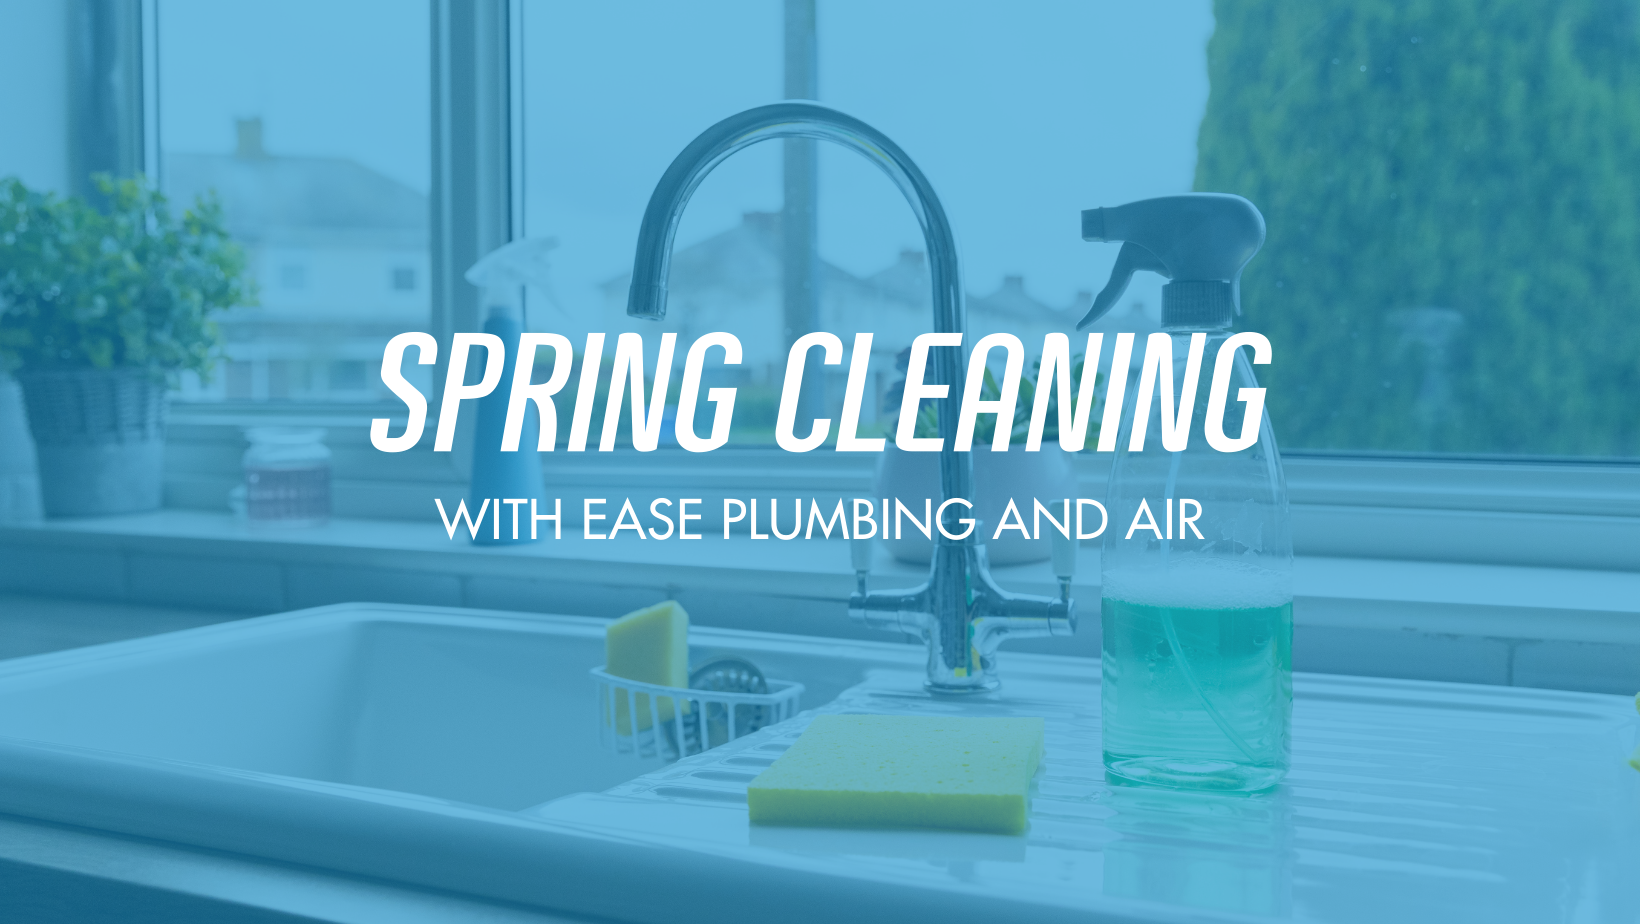 Spring Cleaning with Ease Plumbing and Air